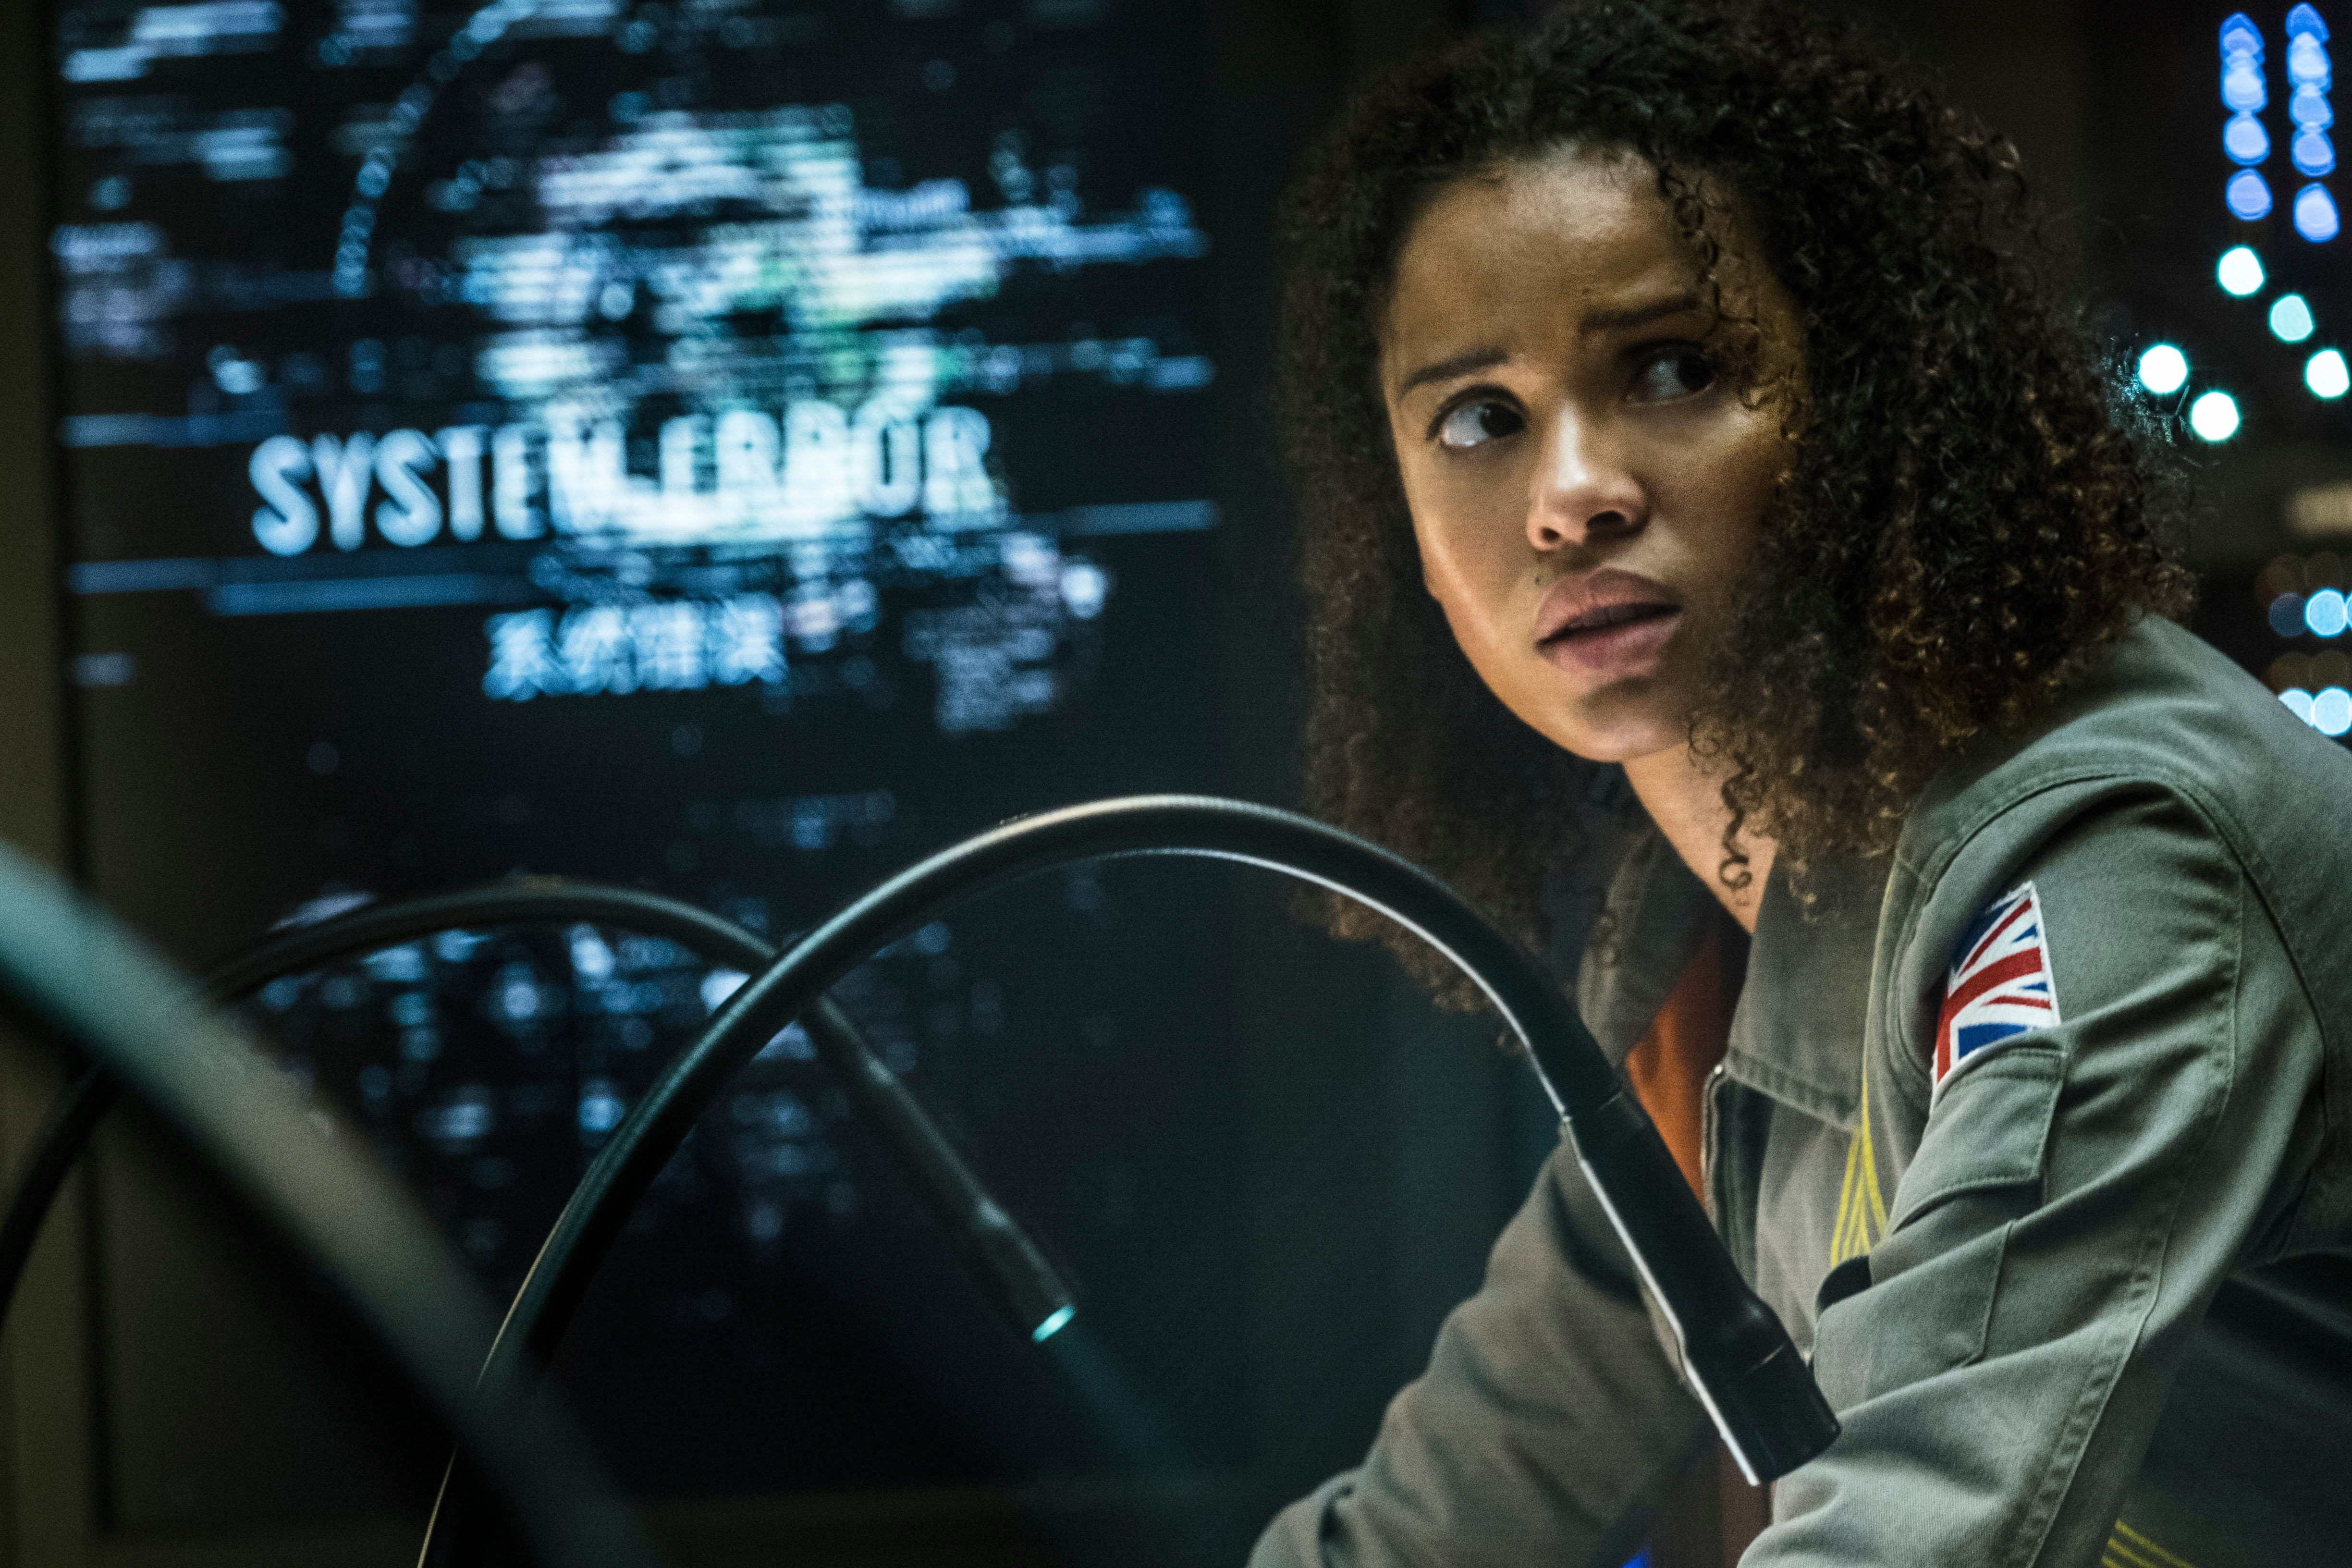 How The Cloverfield Paradox Landed on Netflix